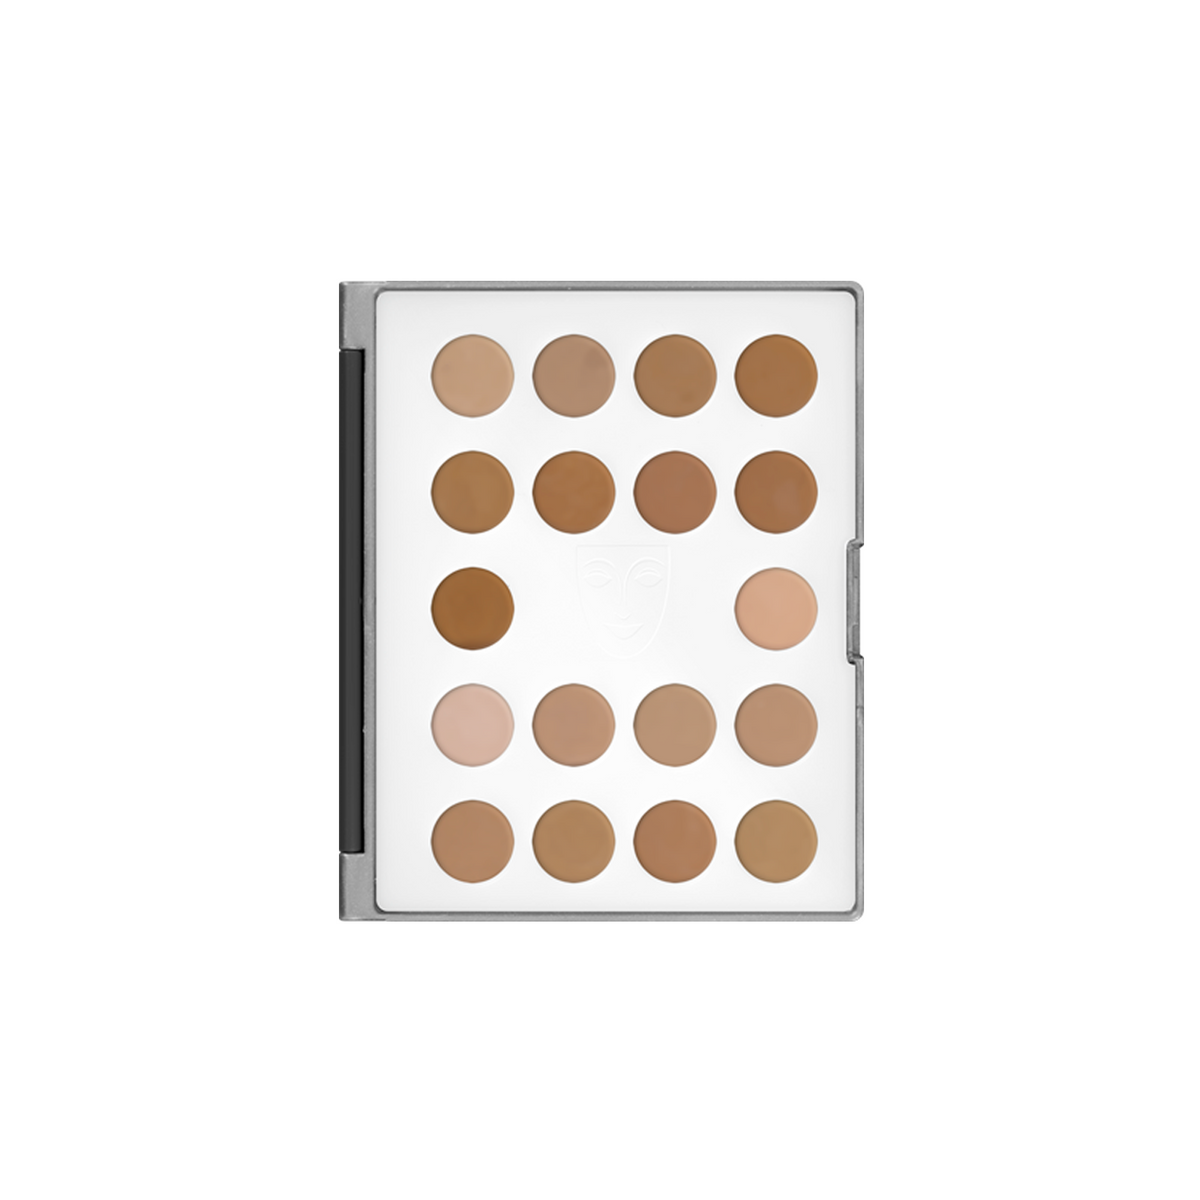 Kryolan HD Cream Micro Foundation Mini Palette - No. 1 - Red Carpet FX